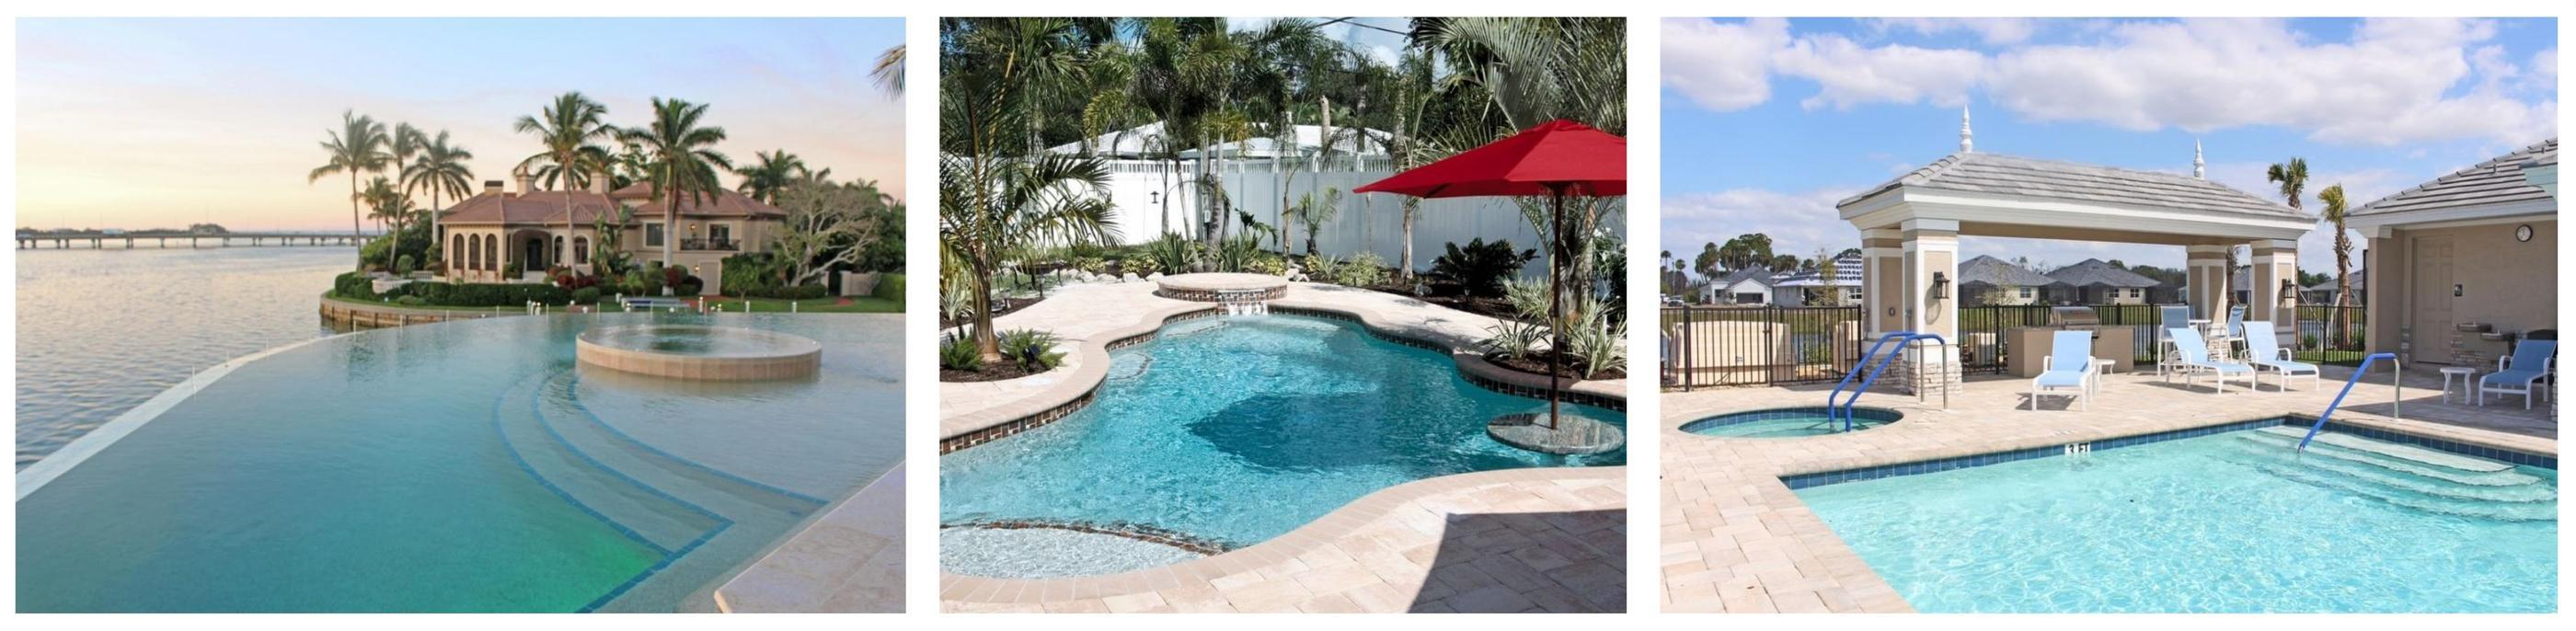 Swimming Pool Construction Holiday Pools Of West Florida